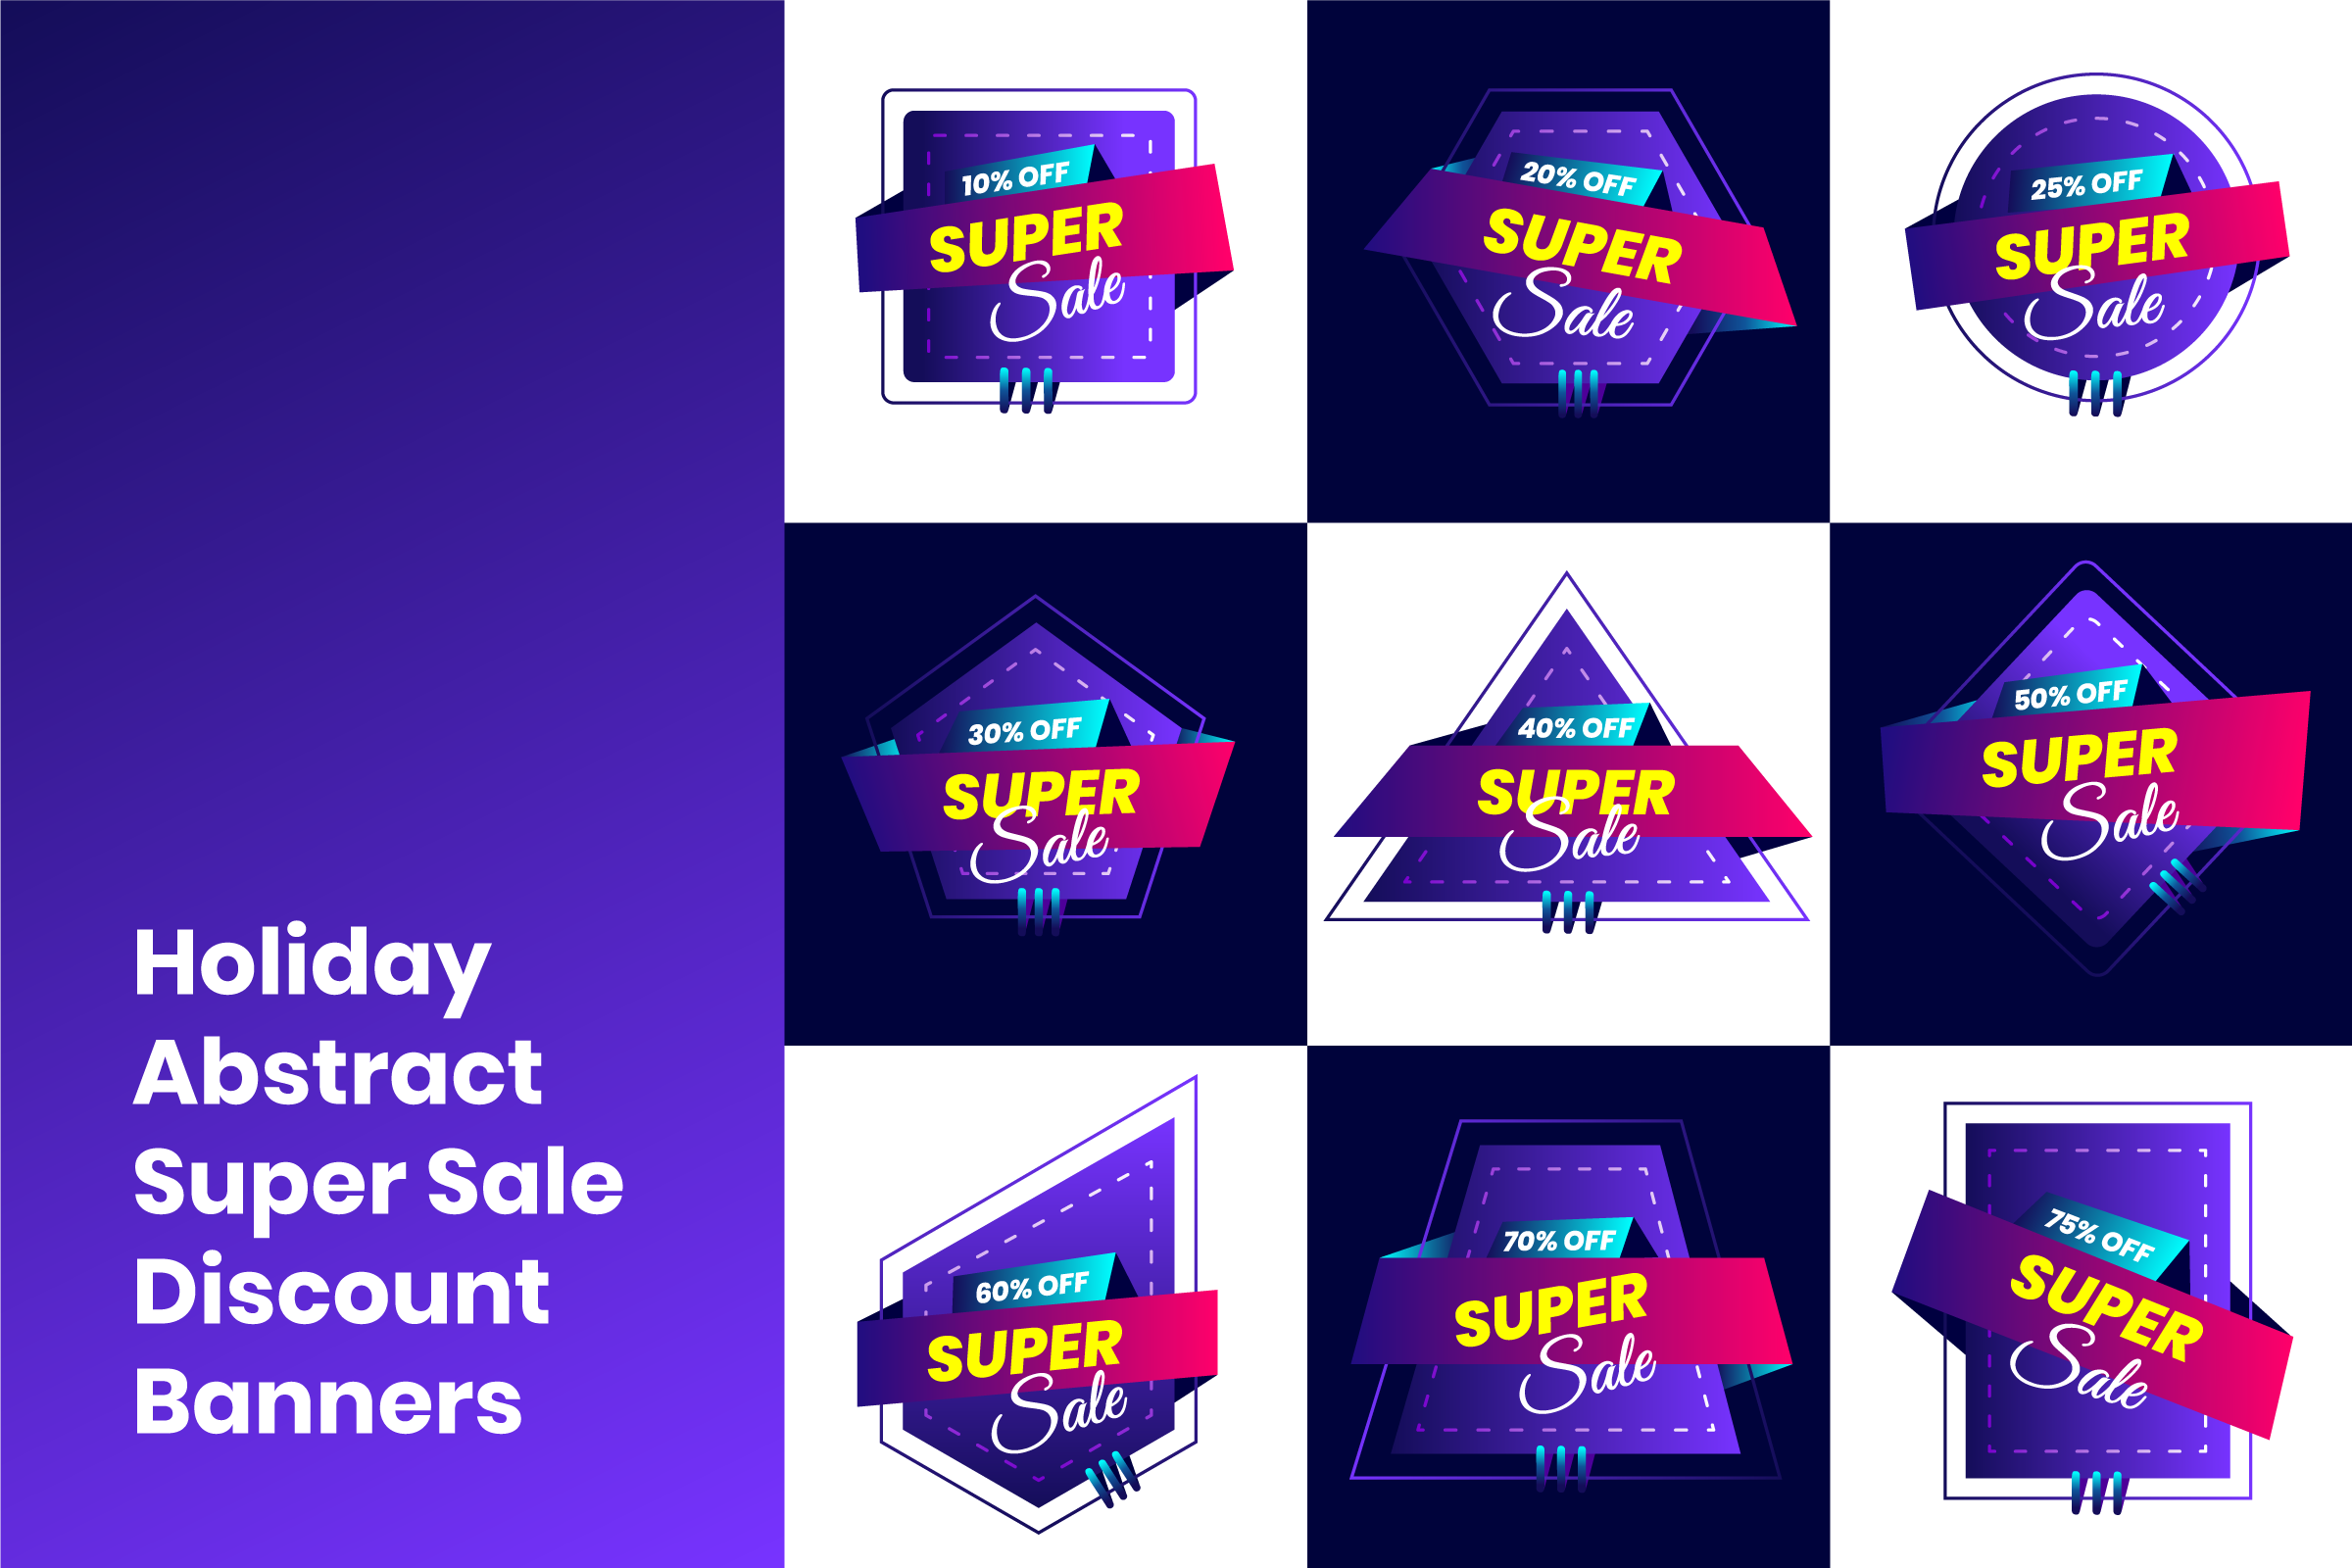 Holiday Abstract Super Sale Discount Banners example image 1